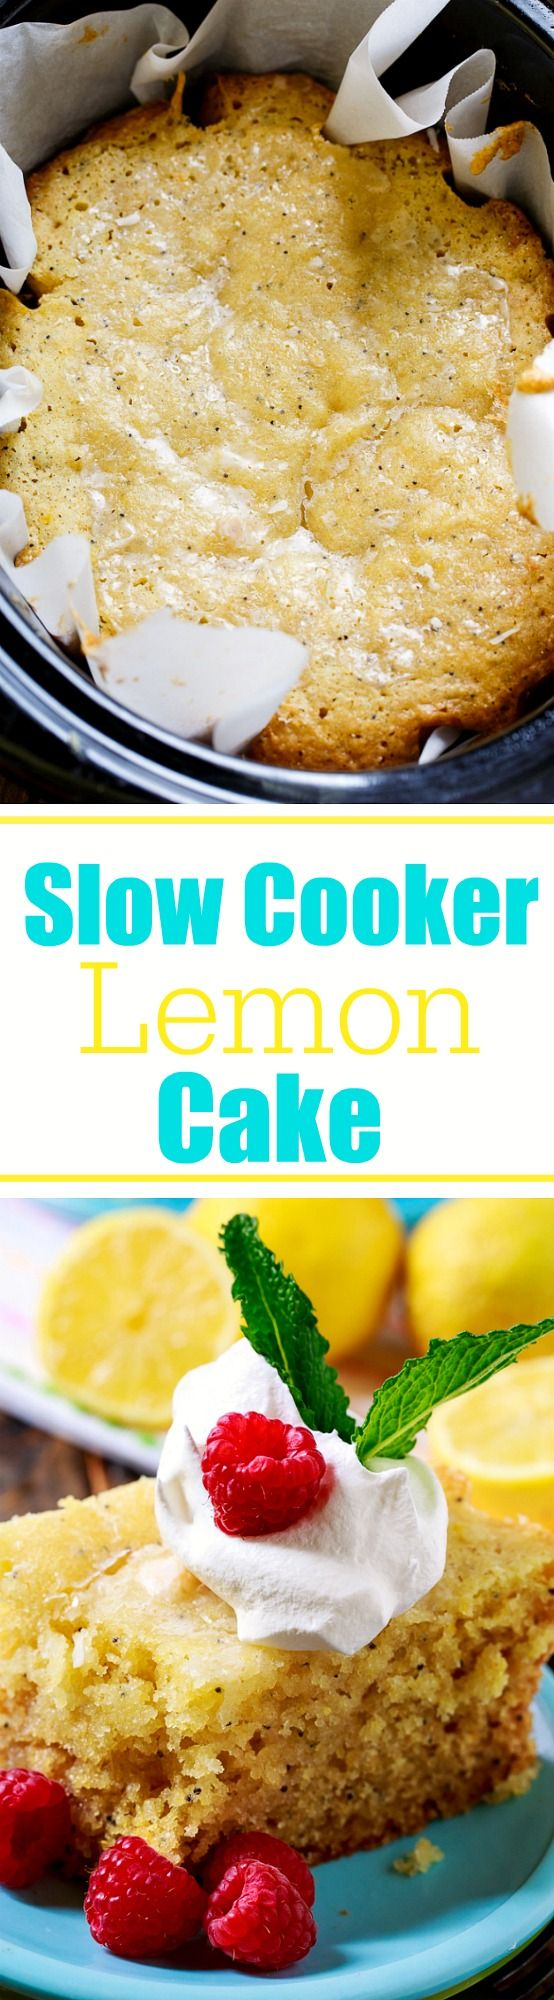 Slow Cooker Lemon Cake made from scratch. This crock pot cake is moist and has lots of fresh lemon flavor.